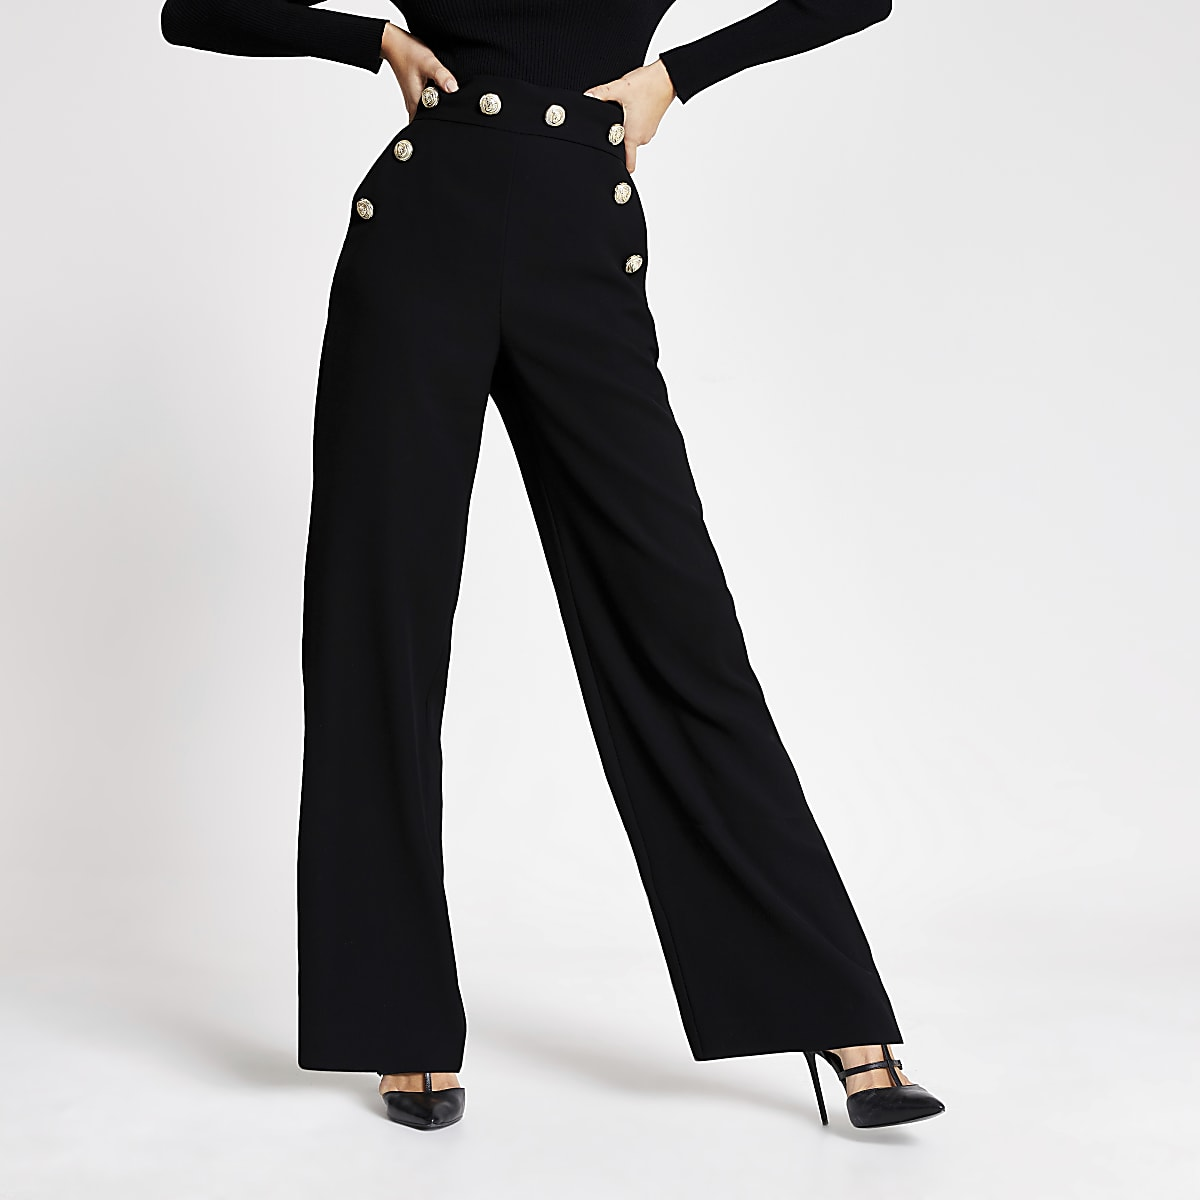 Black button high waist wide leg trousers